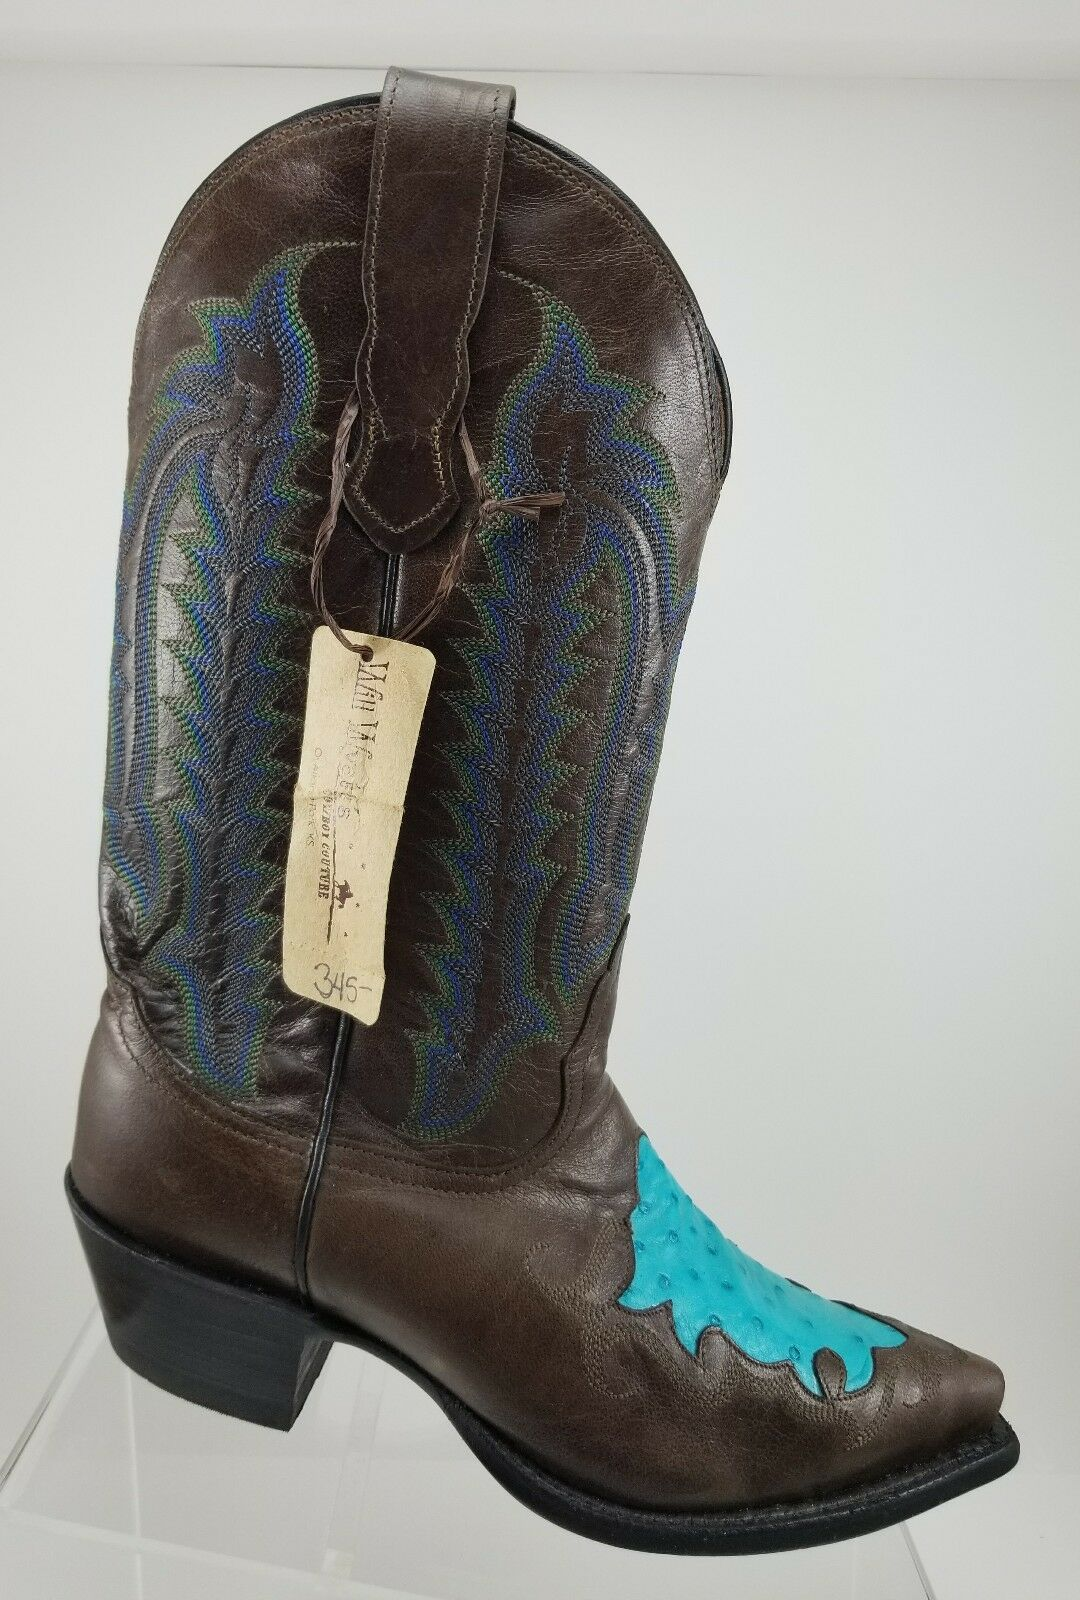 Womens Nocona Western Cowgirl Full Ostrich Quill Turquoise Toe Zip Up Boots 6.5M